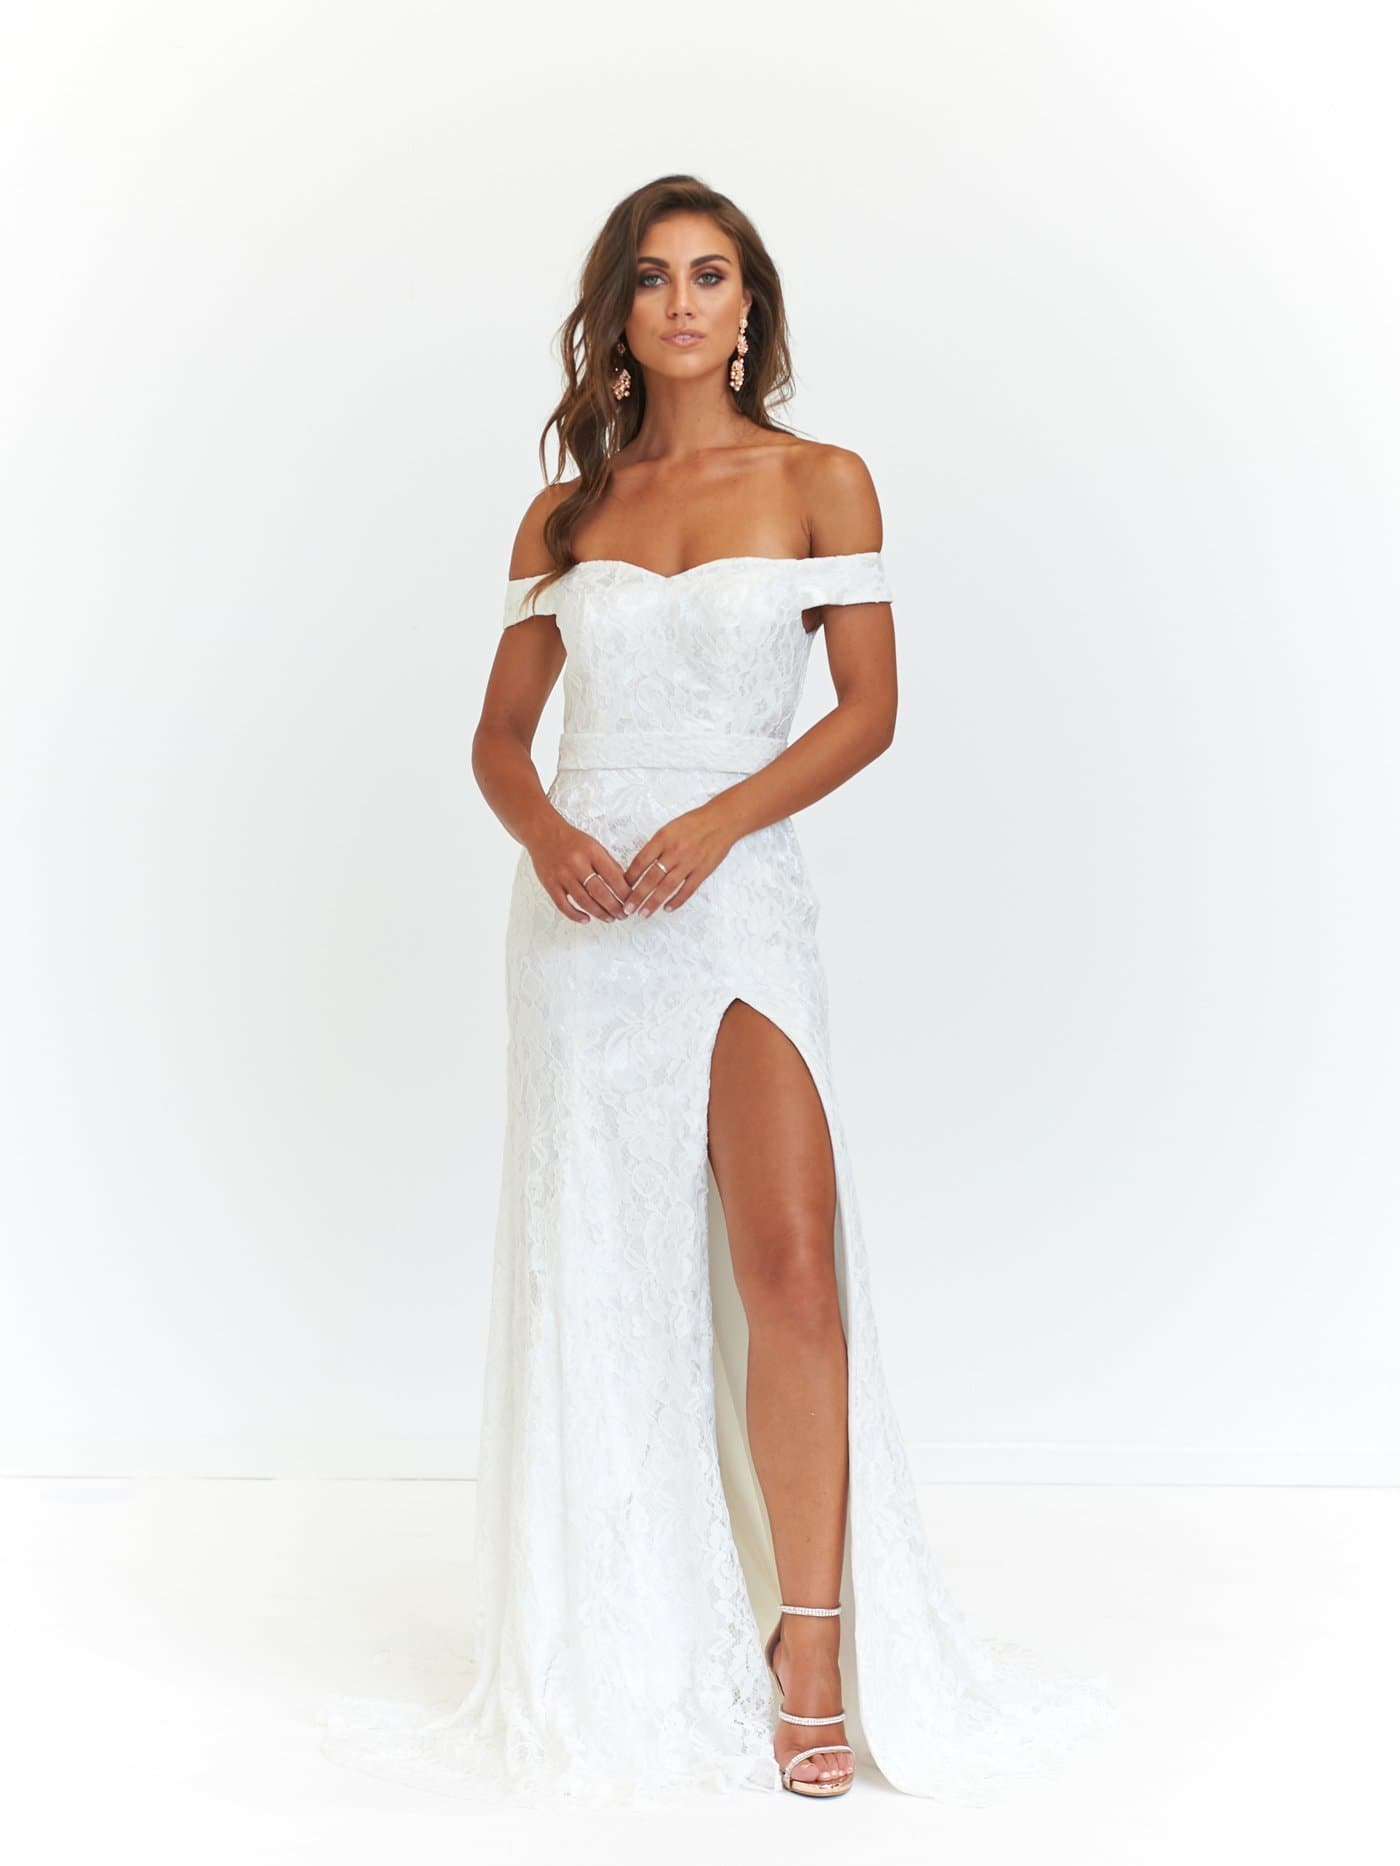 dd6e1ba22df A N Leyla - White Off-Shoulder Lace Gown with Side Slit – A N Luxe Label